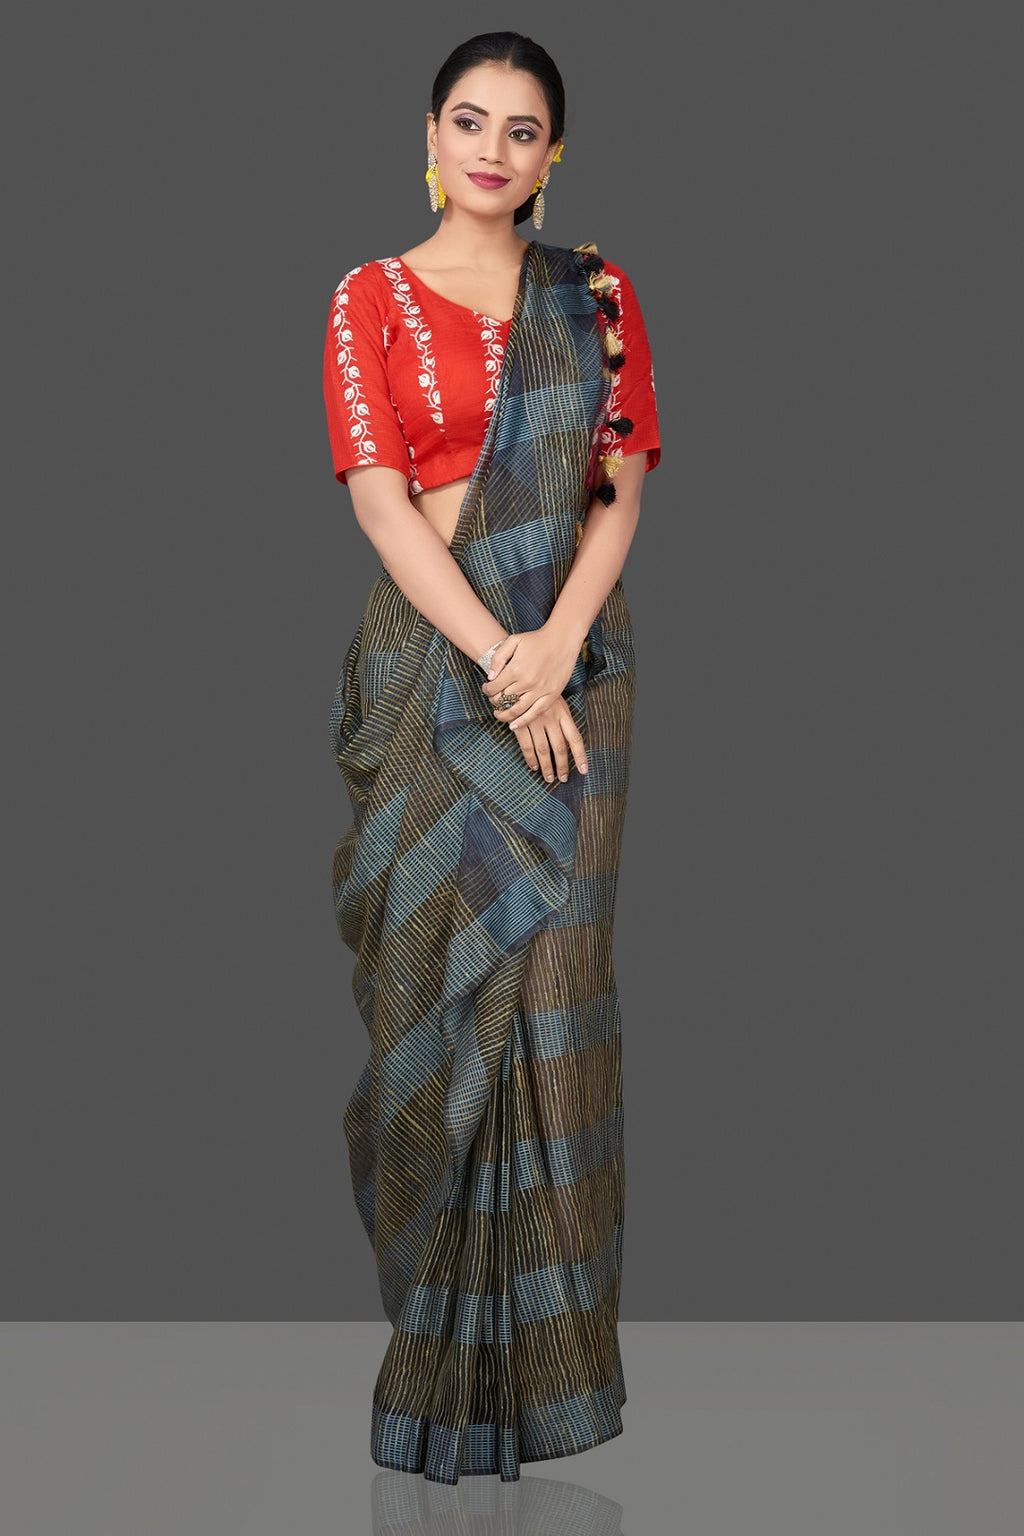 Shop gorgeous black and blue tussar sari online in USA with organza pallu and red embroidered sari blouse. Shop handowoven sarees, designer saree blouses, embroidered sarees, designer sarees, pure silk sarees, tussar saris online in USA from Pure Elegance Indian saree store.-full view